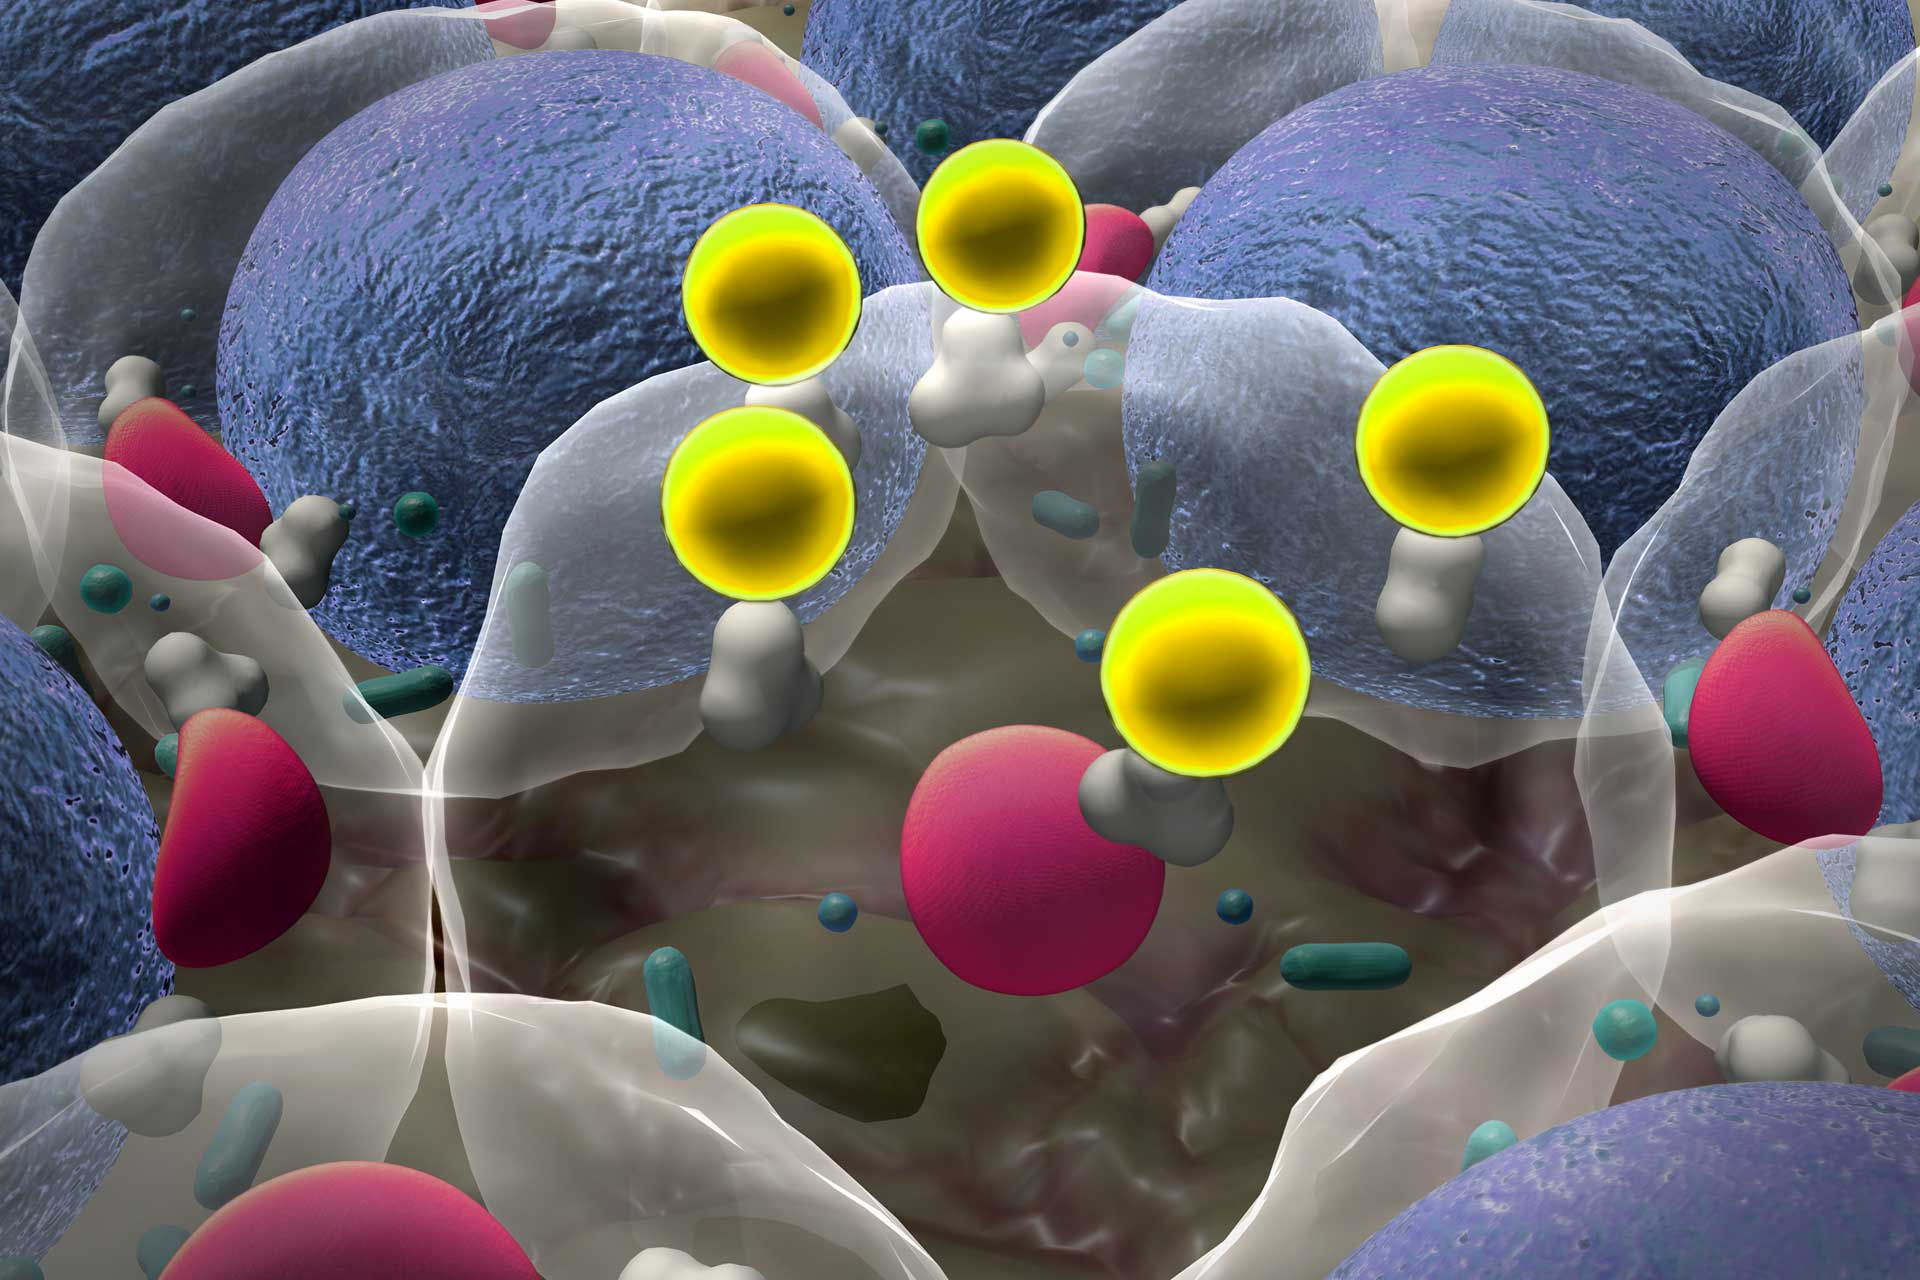 Nanoparticle graphic